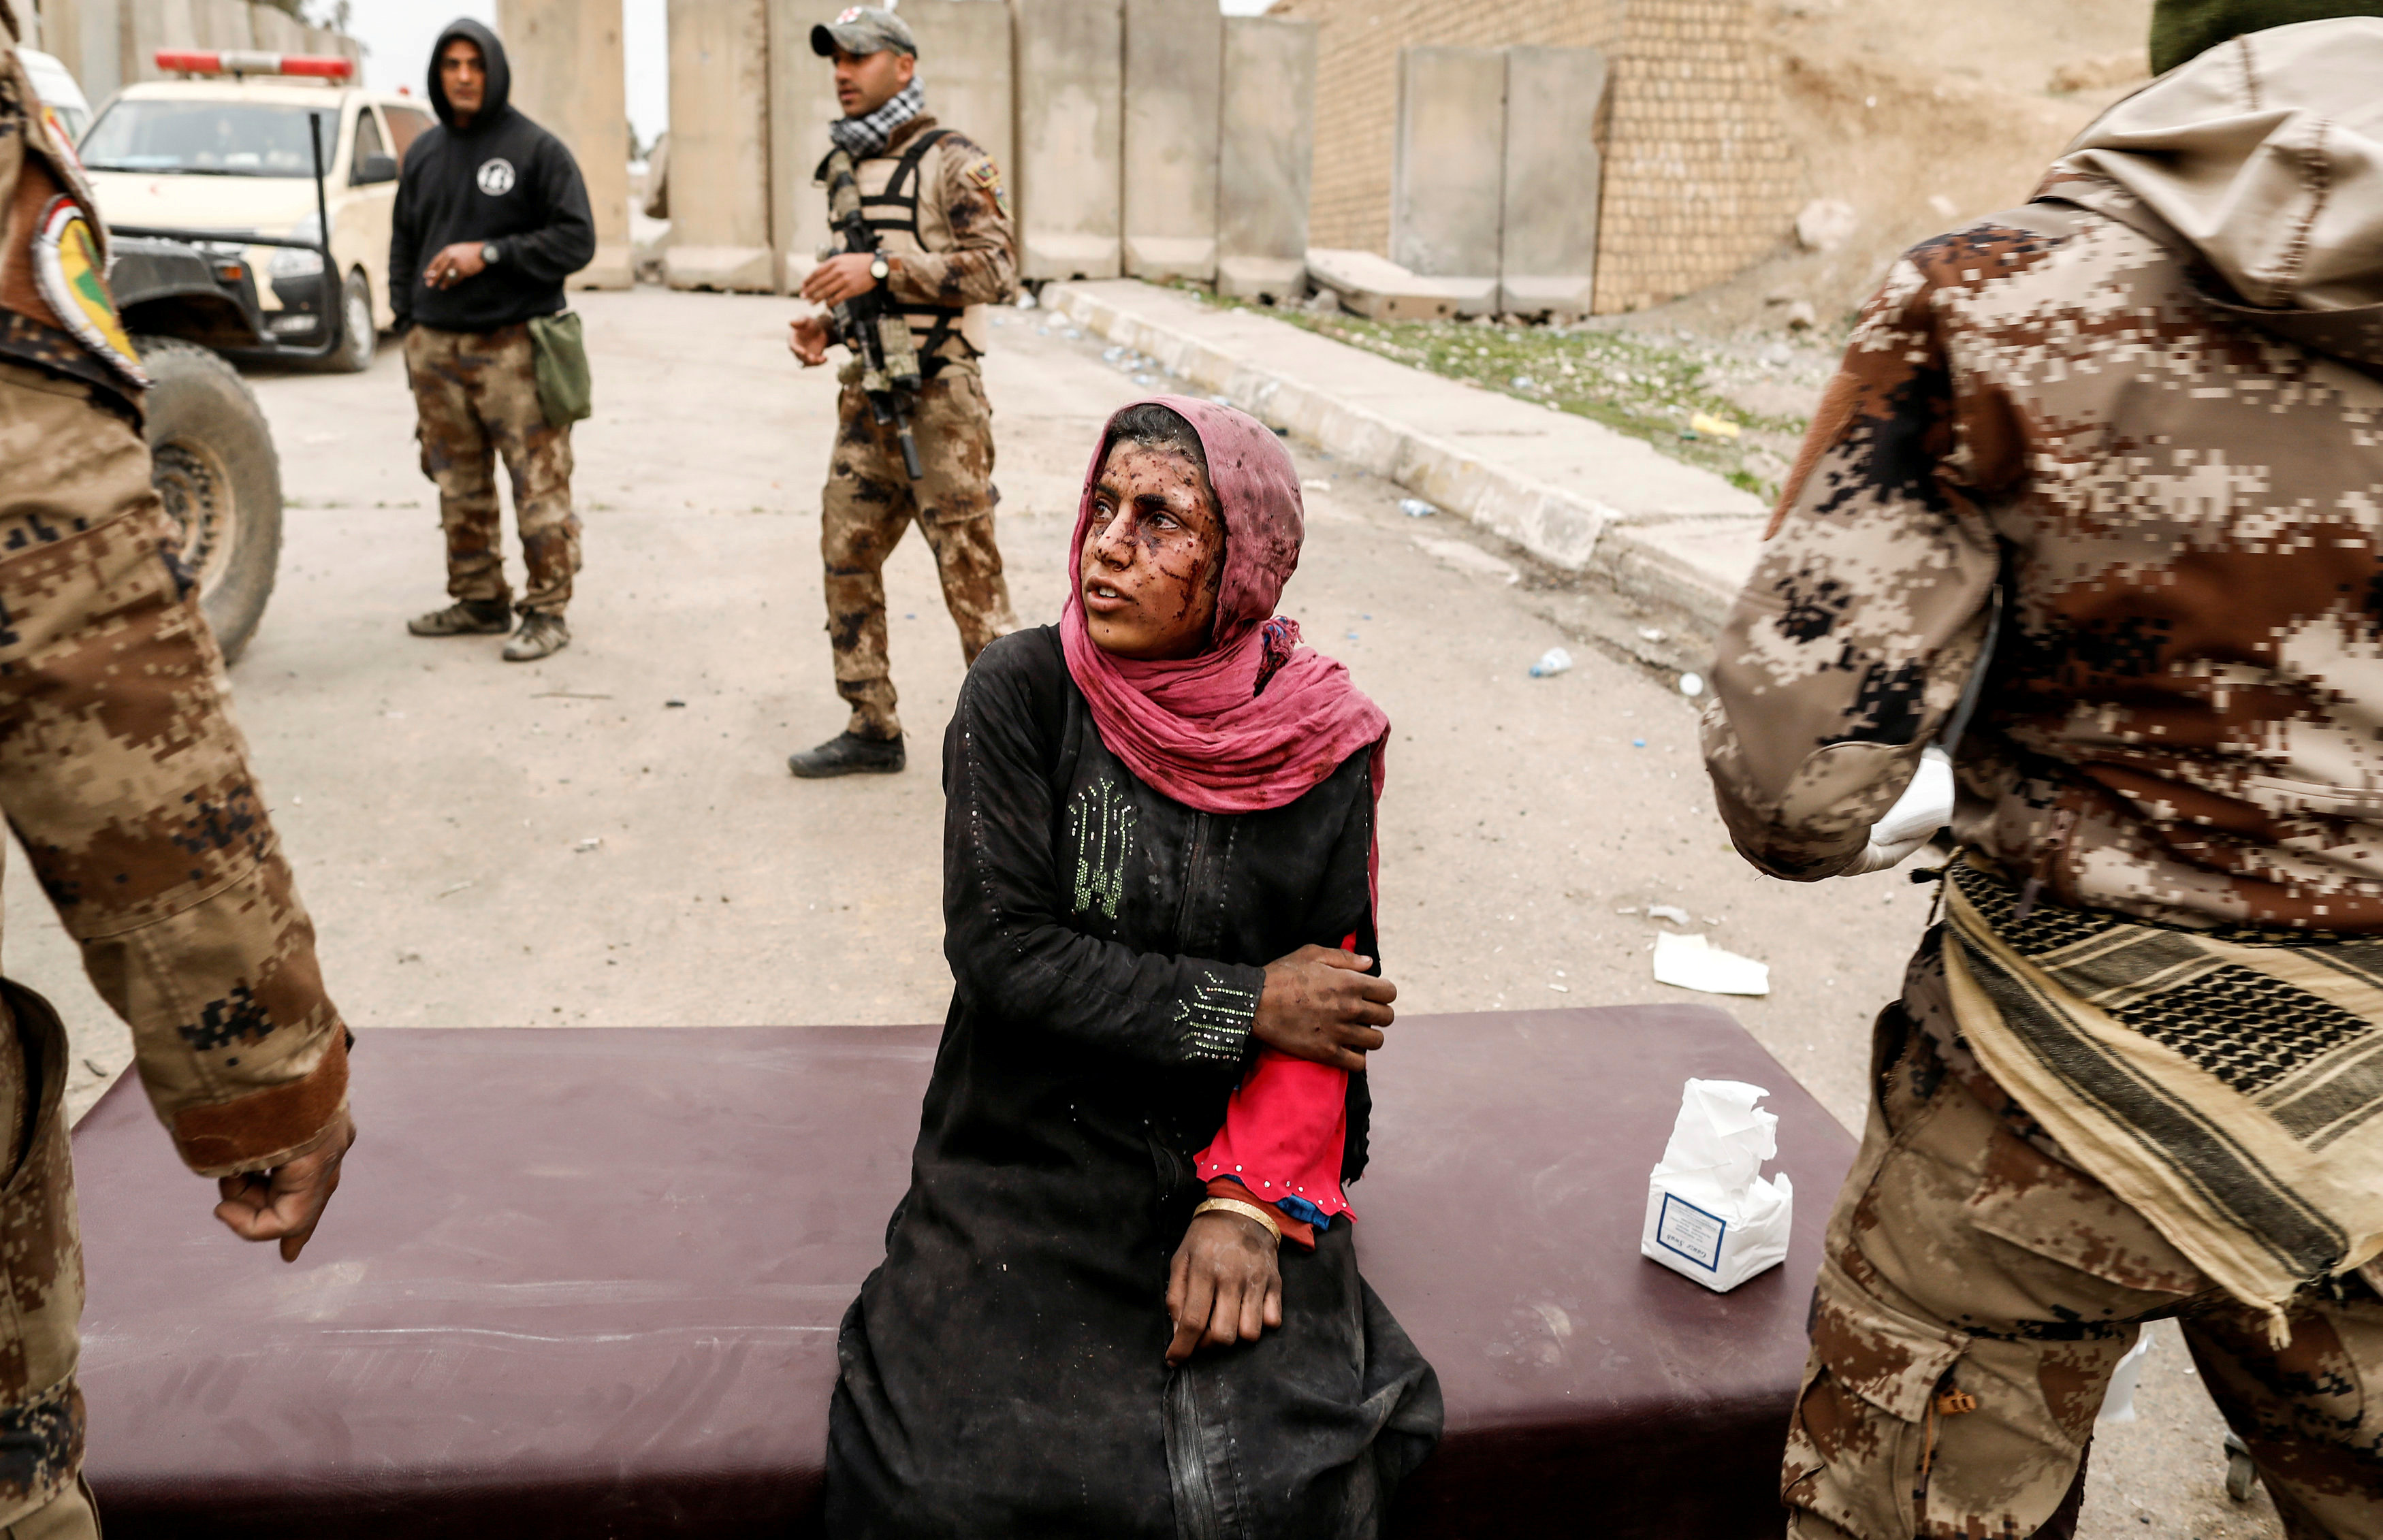 A woman injured in a mortar attack is treated by medics in a field clinic as Iraqi forces battle with Islamic State militants, in western Mosul, Iraq, March 2, 2017.